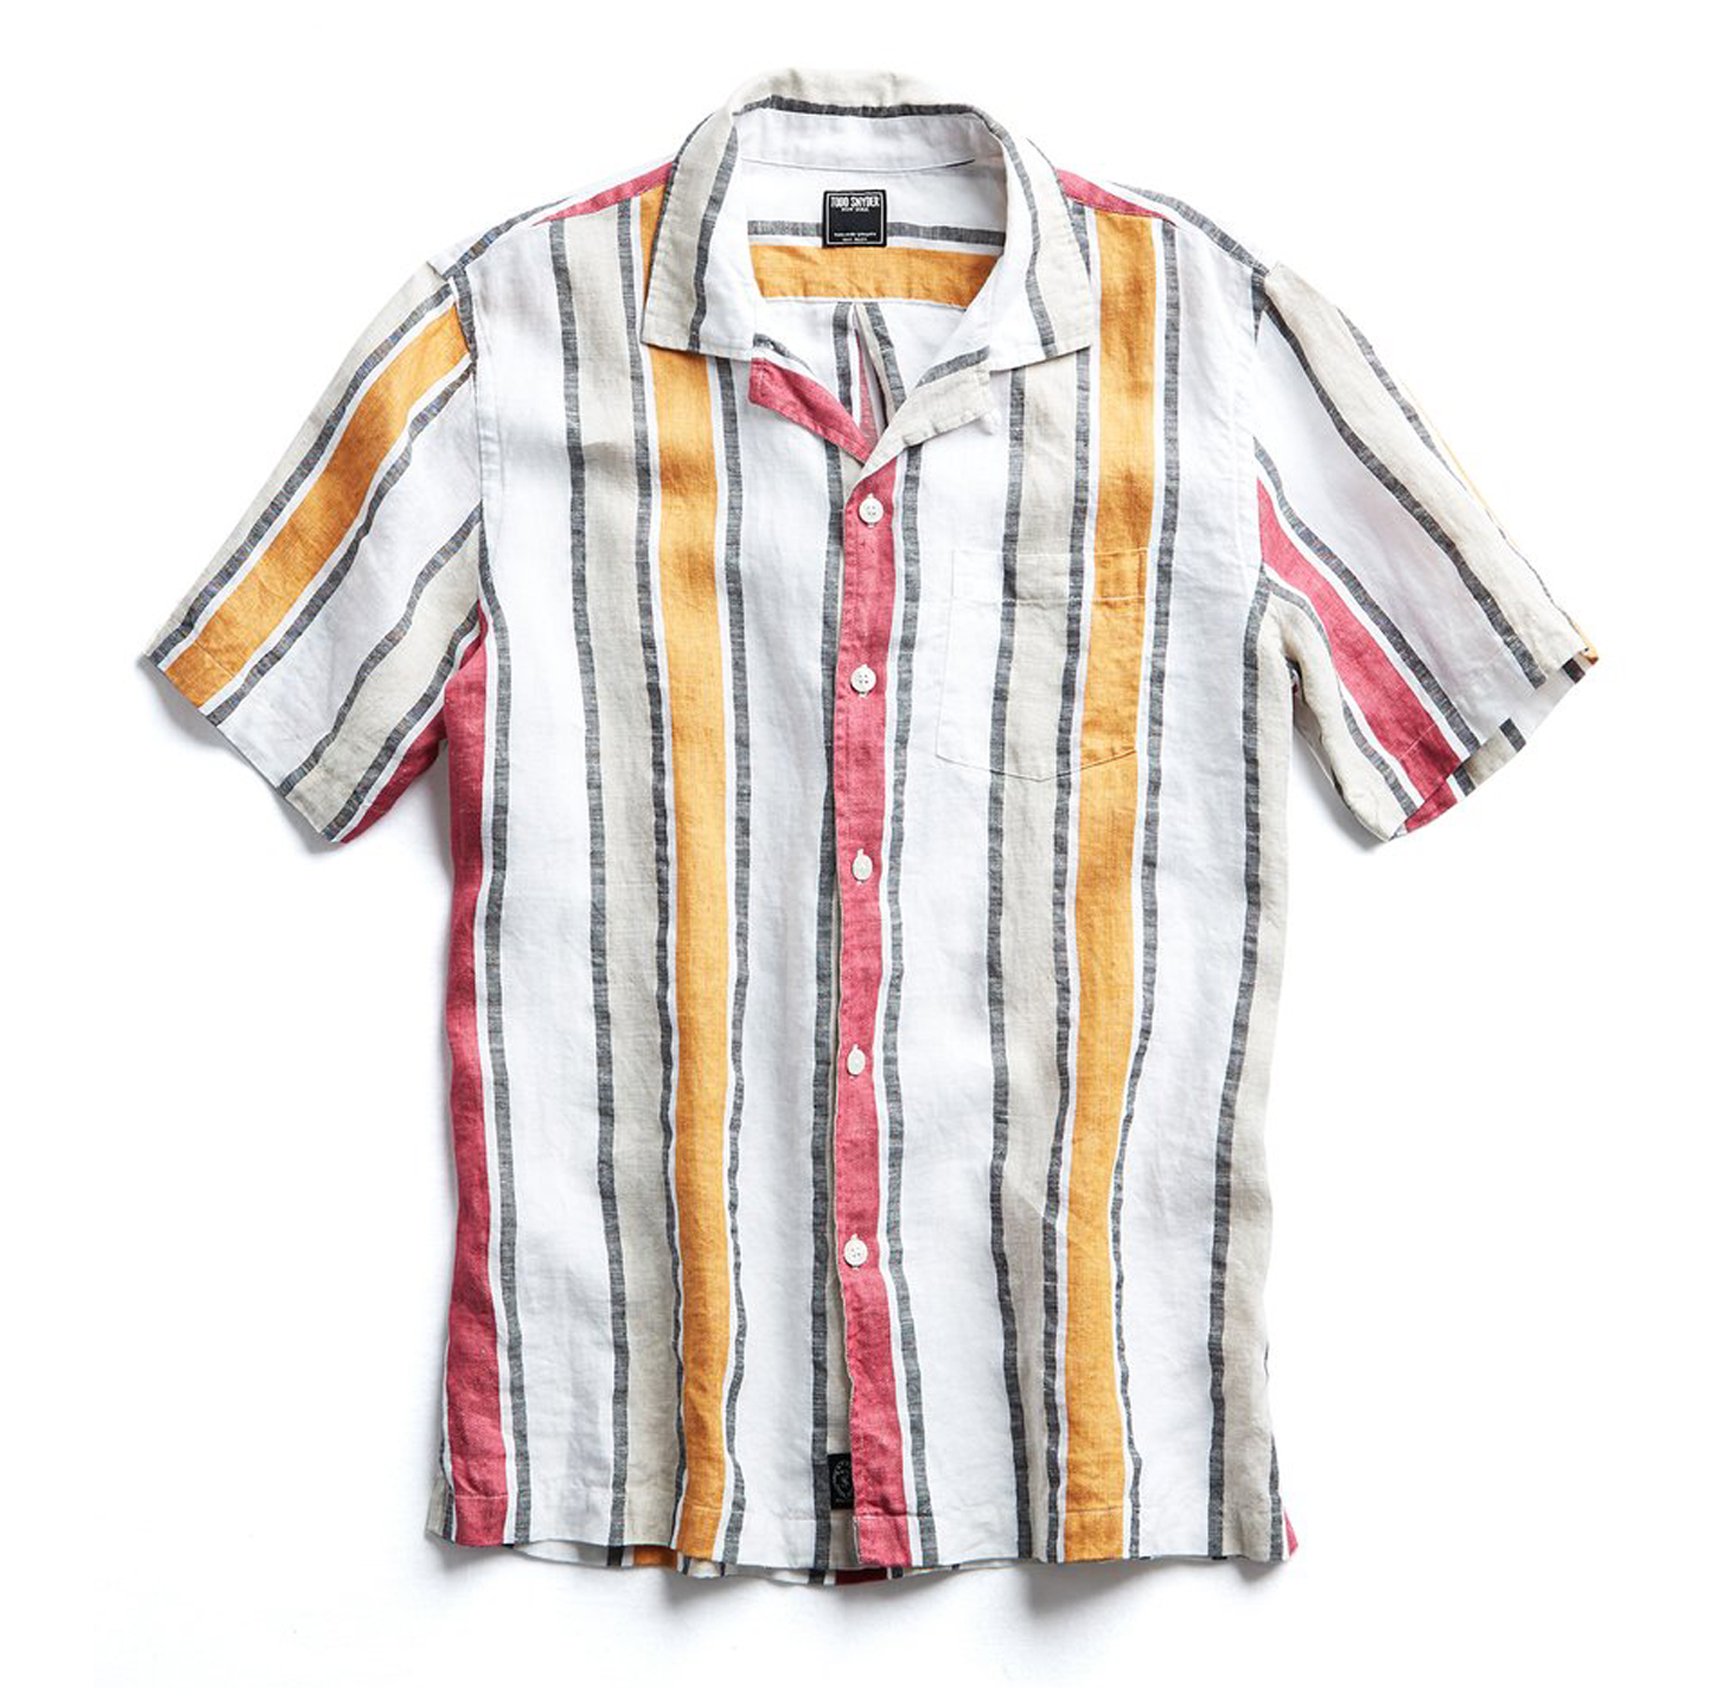 Tom Snyder striped shirt